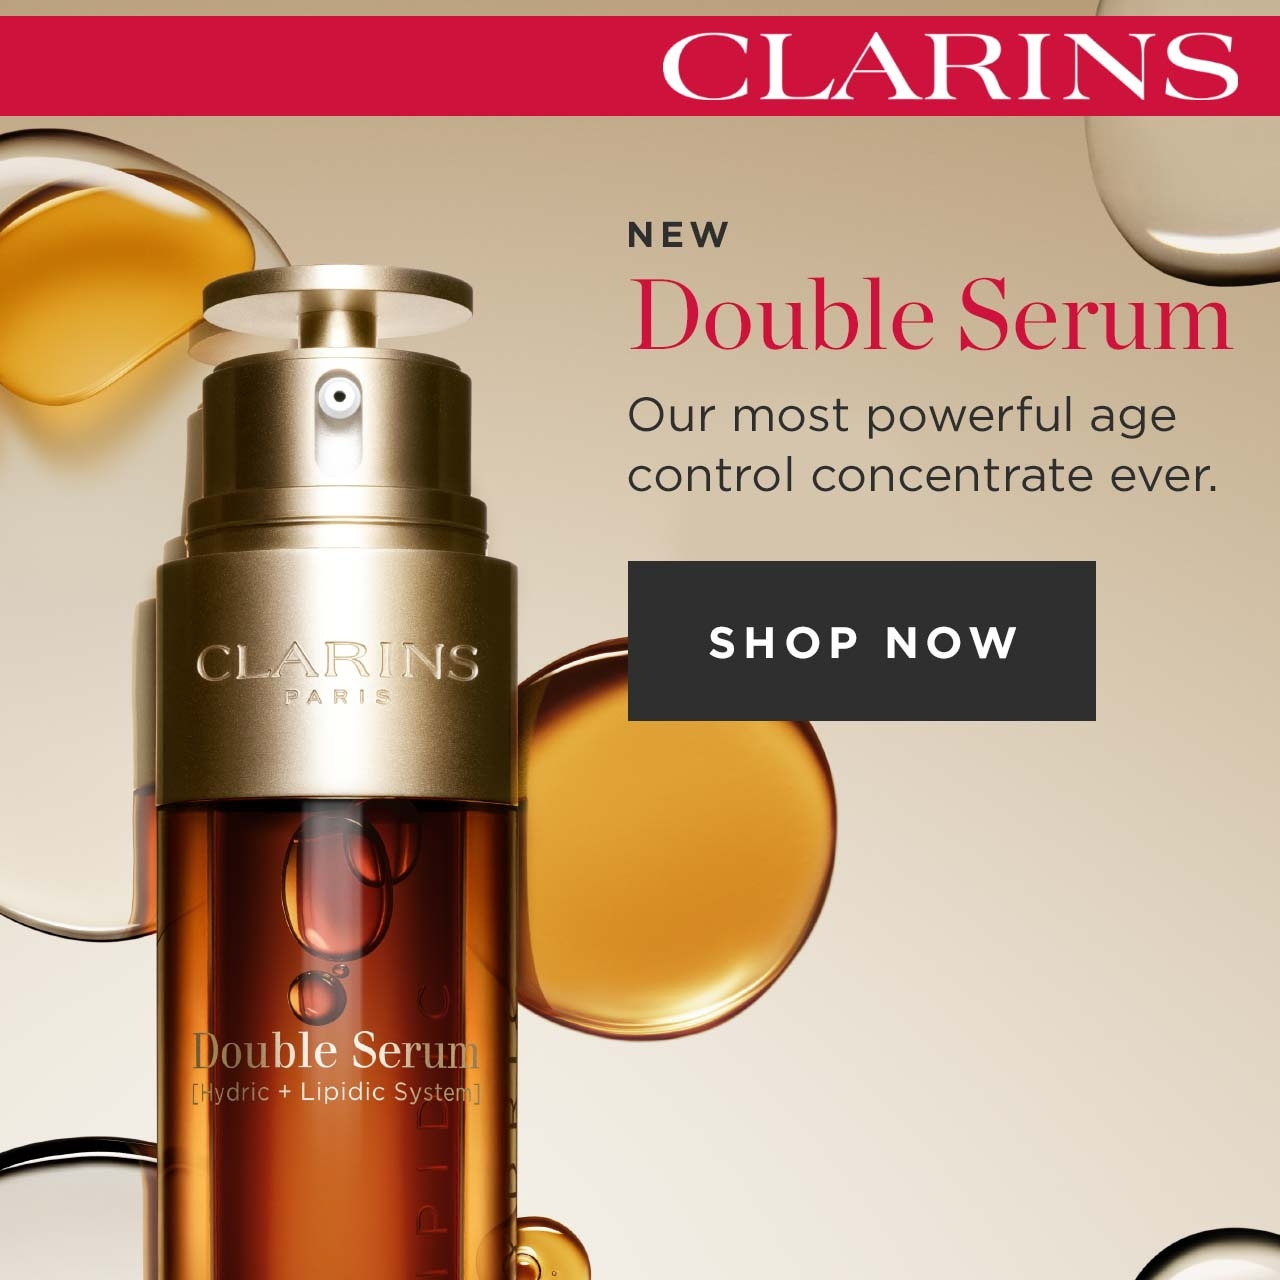 New Clarins Double Serum